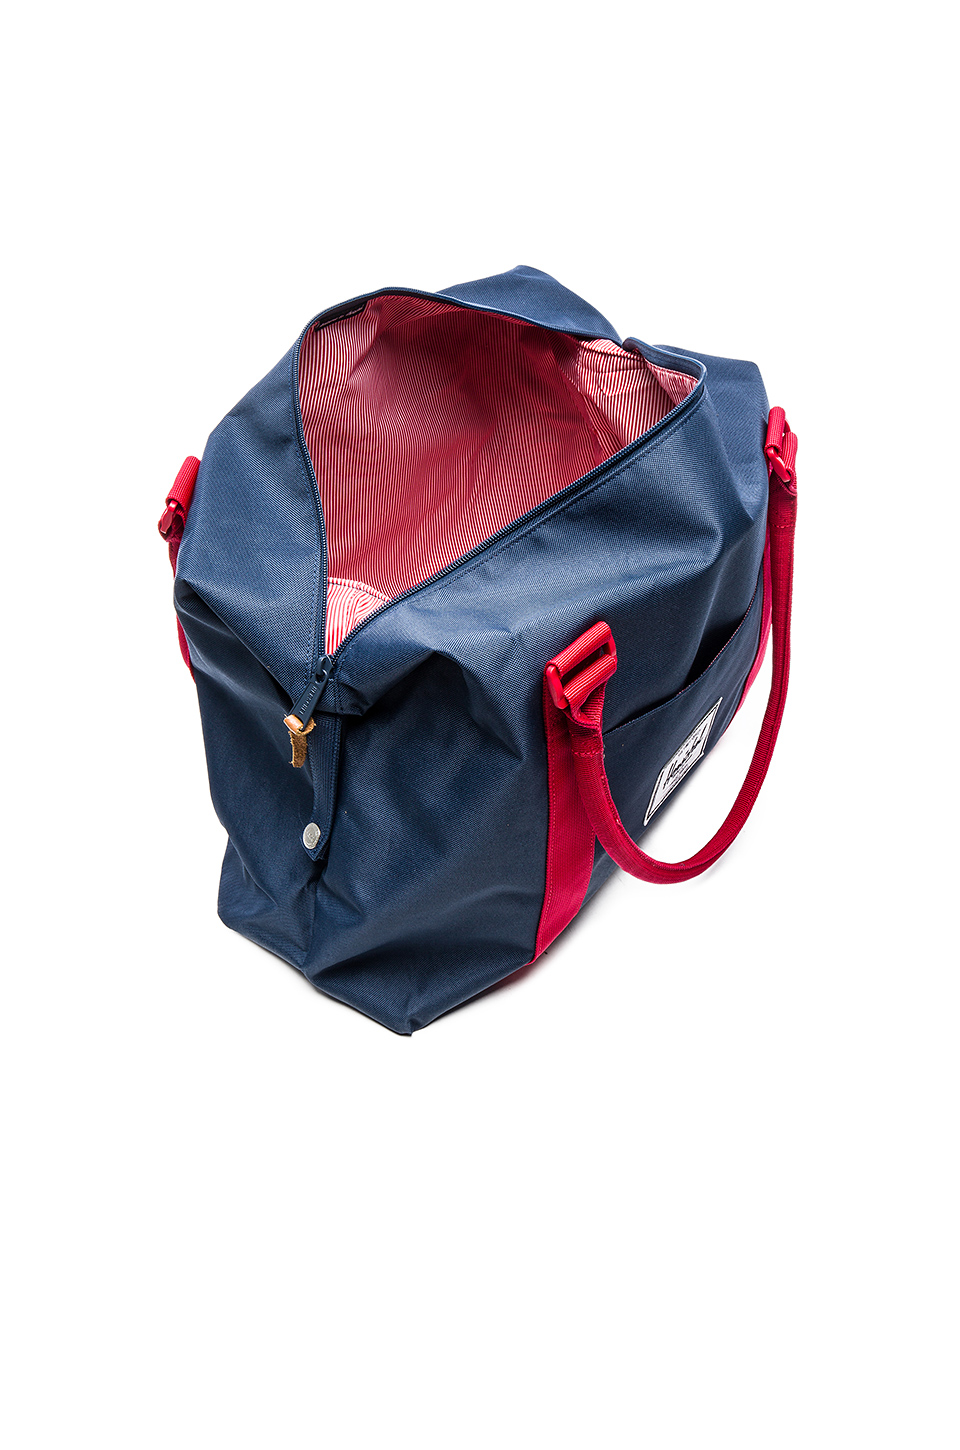 Herschel Supply Co. Strand Duffle in Navy/Red